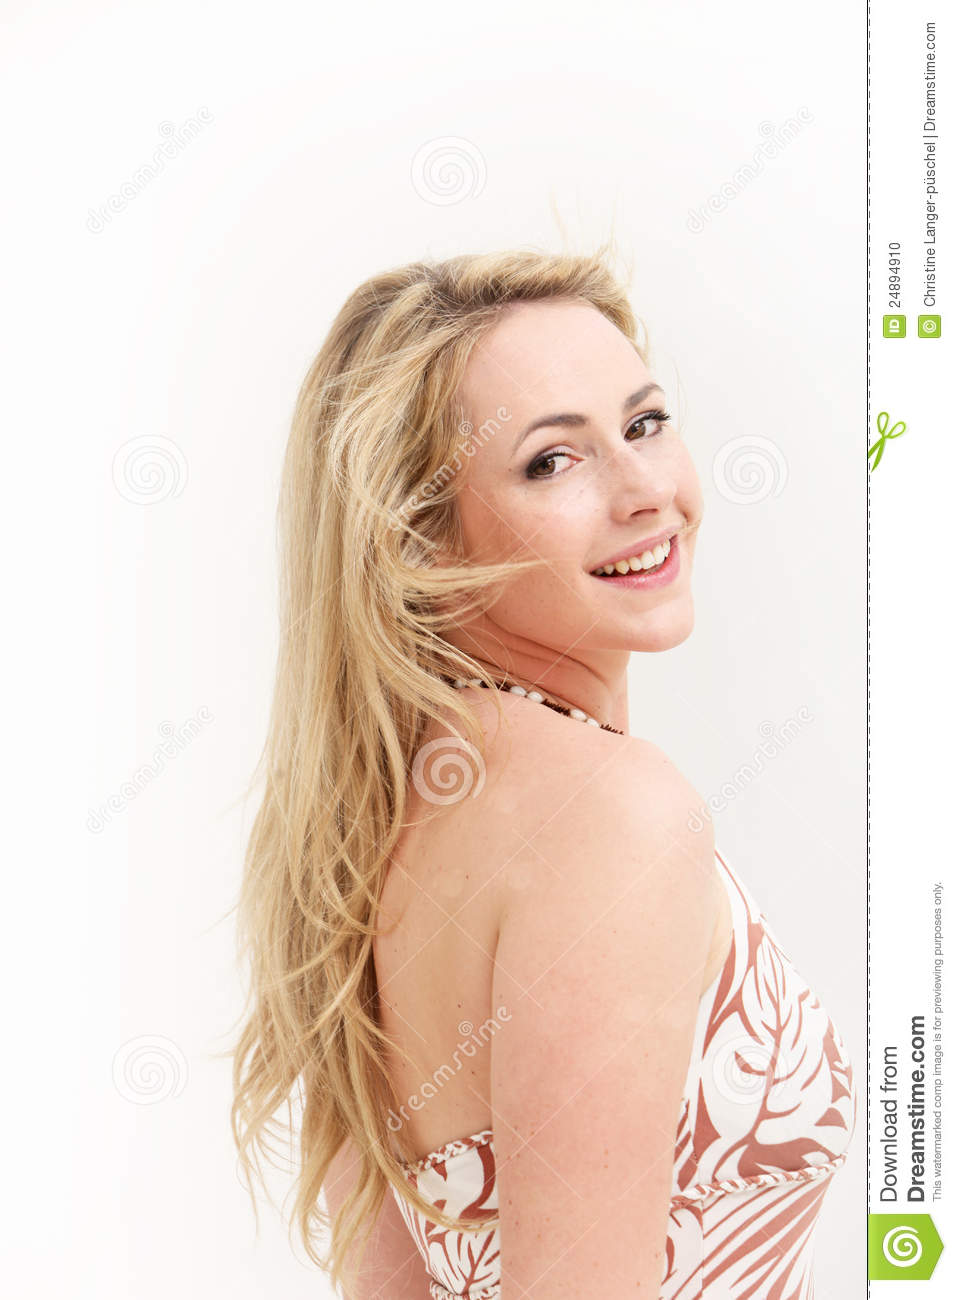 Smiling woman looking over her shoulder